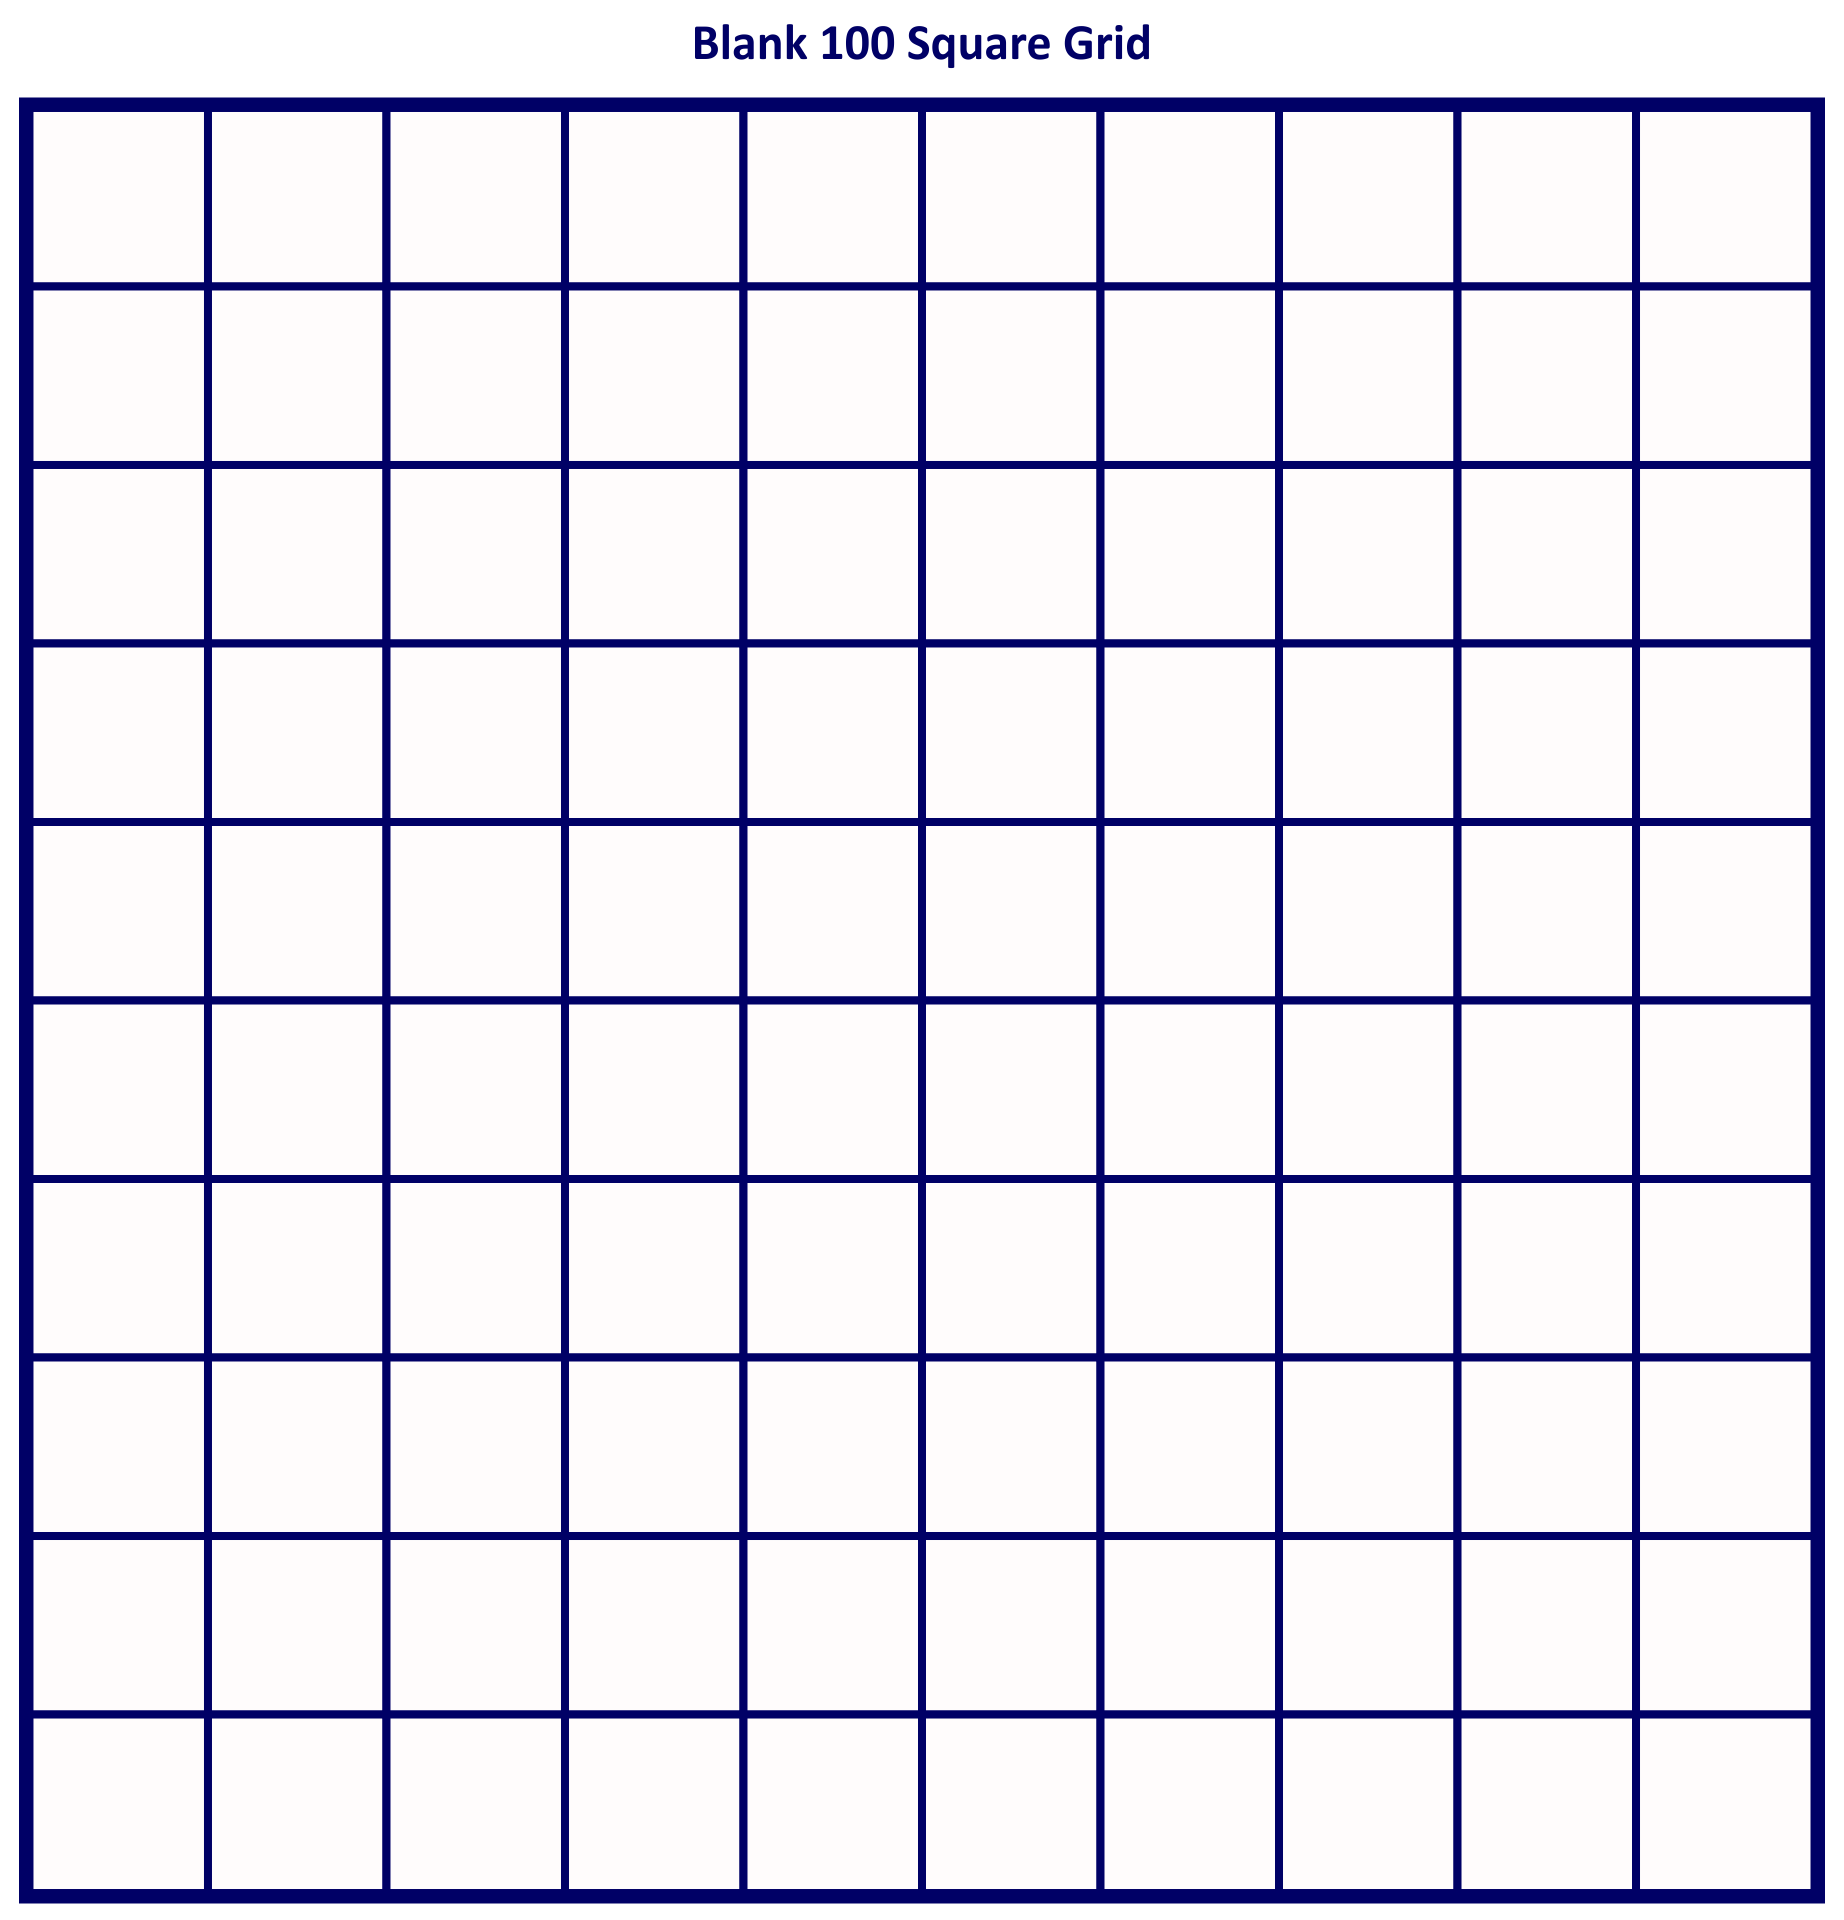 Images of Printable 100 Square Grid - Grid with 100 Squares, Printable ...